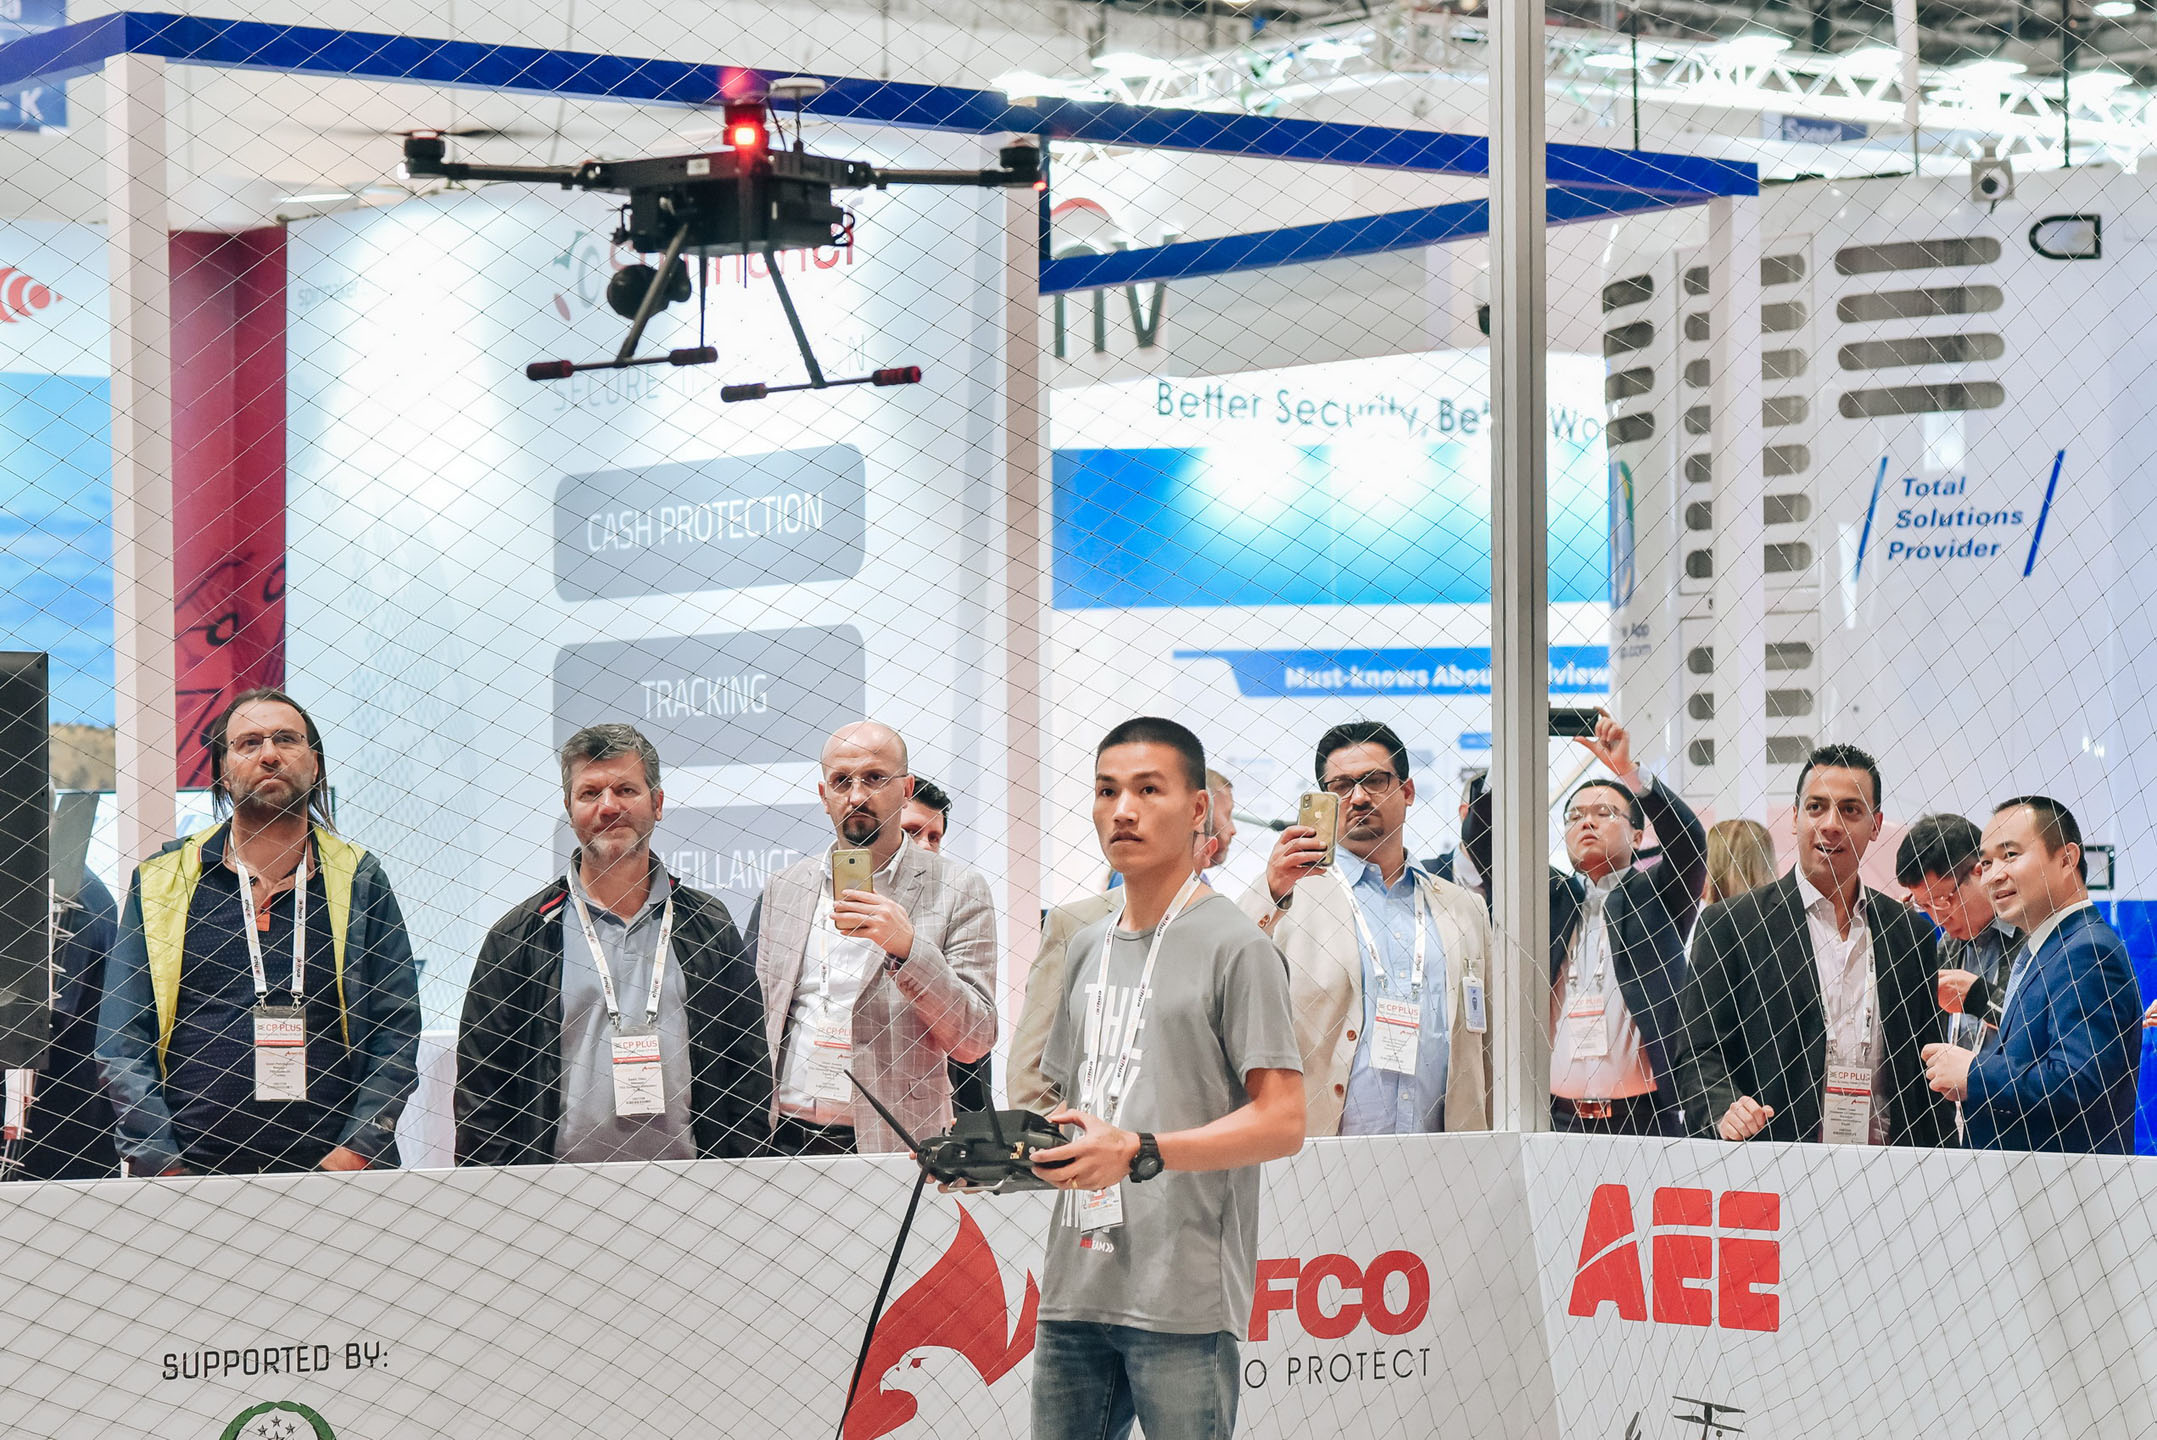 Drone Zone Demonstration at Intersec 2020